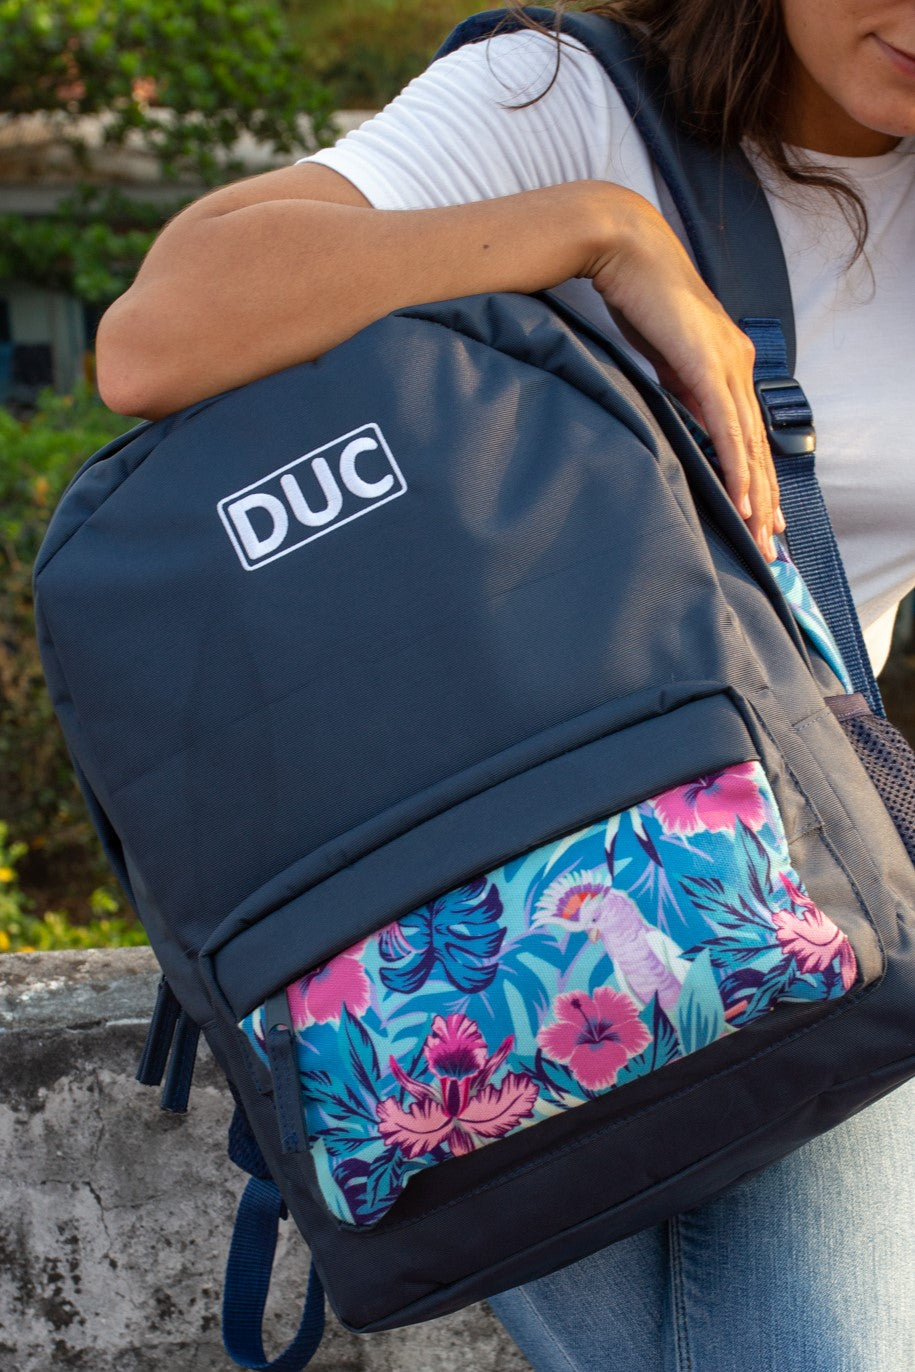 DUC PARROT LARGE BACKPACK